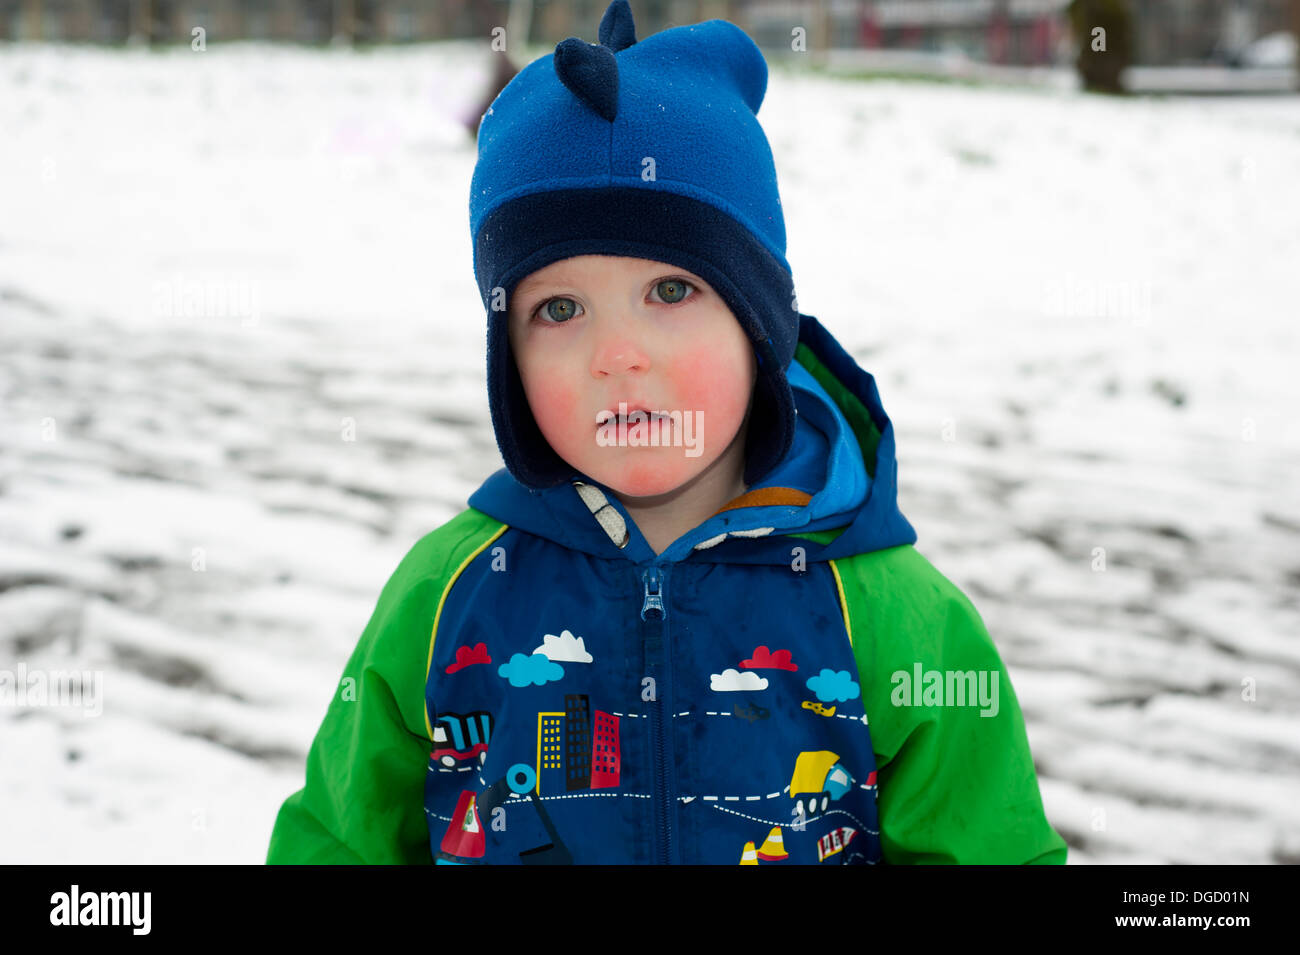 boy wearing woolly hat with red cheeks in snowy park - Stock Image